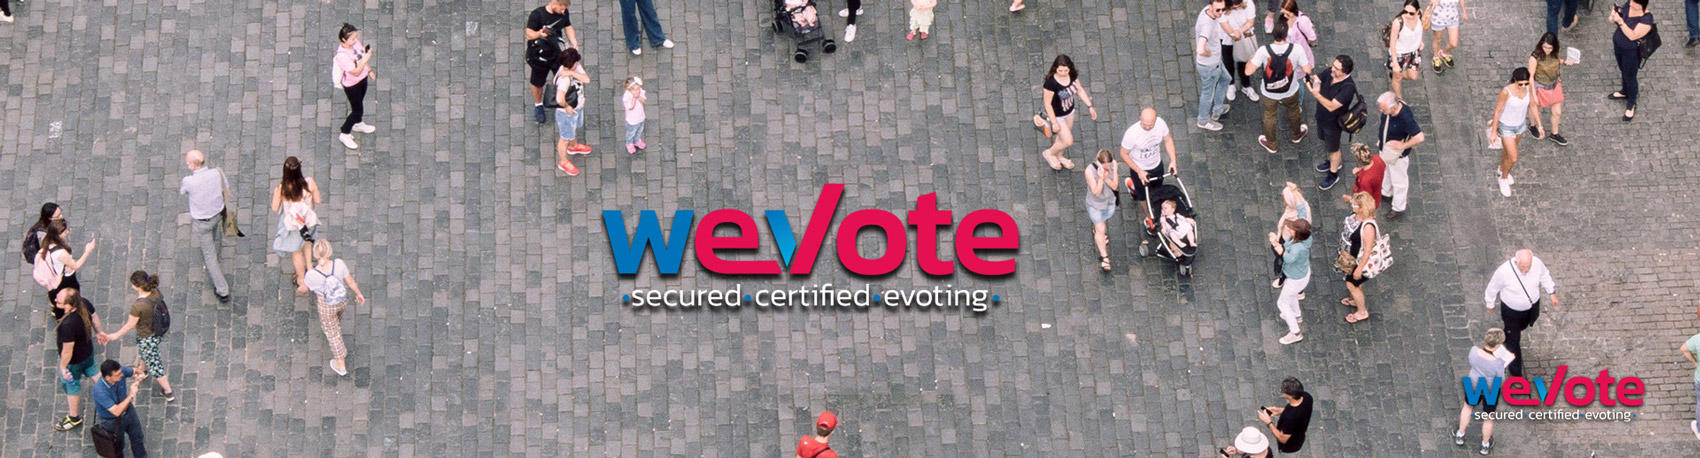 Participation increases exponentially with weVote